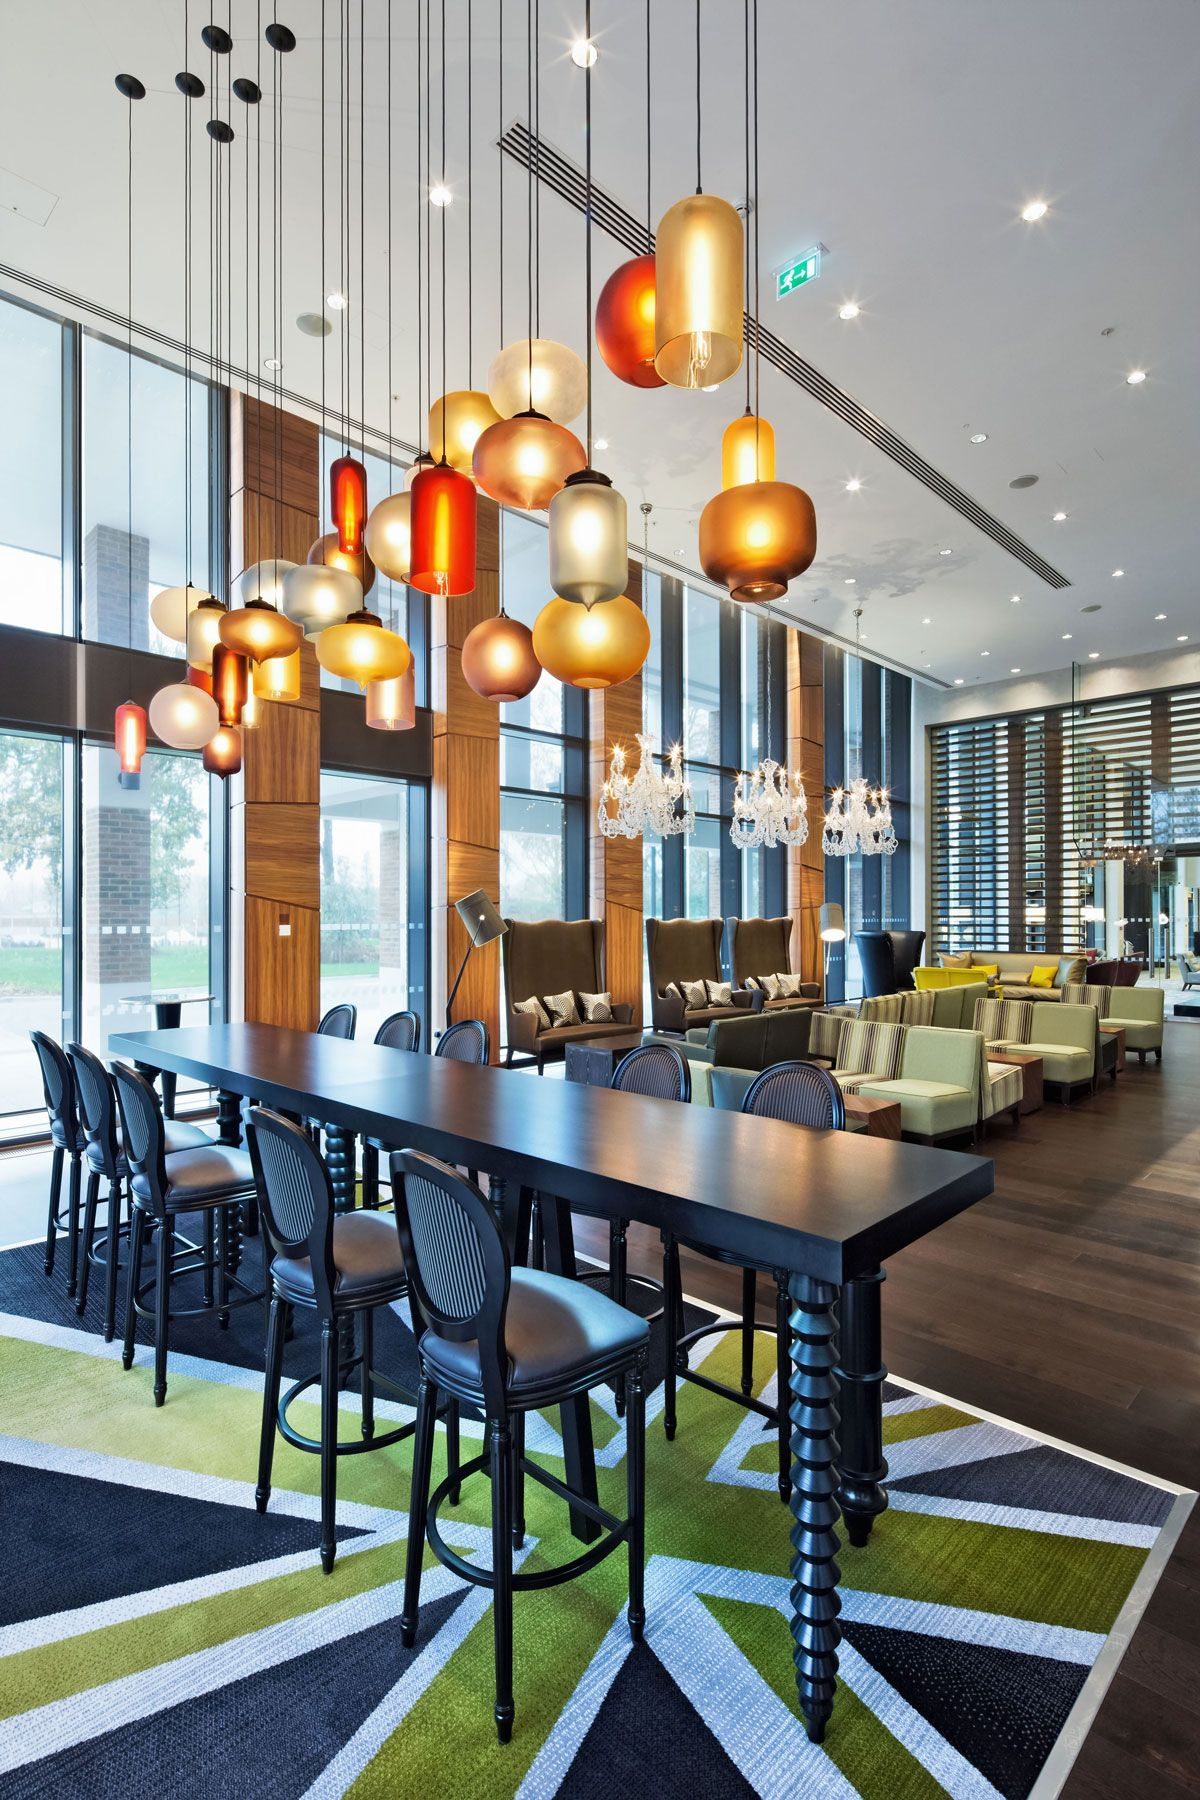 Contemporary Pendant Lighting For Dining Room hanging lighting fixtures above island dining room contemporary with modern dining chairs contemporary pendant lights Niche Modern Pendant Lighting At The Hilton At Heathrow In London Eclectic Dining Room London Niche Modern